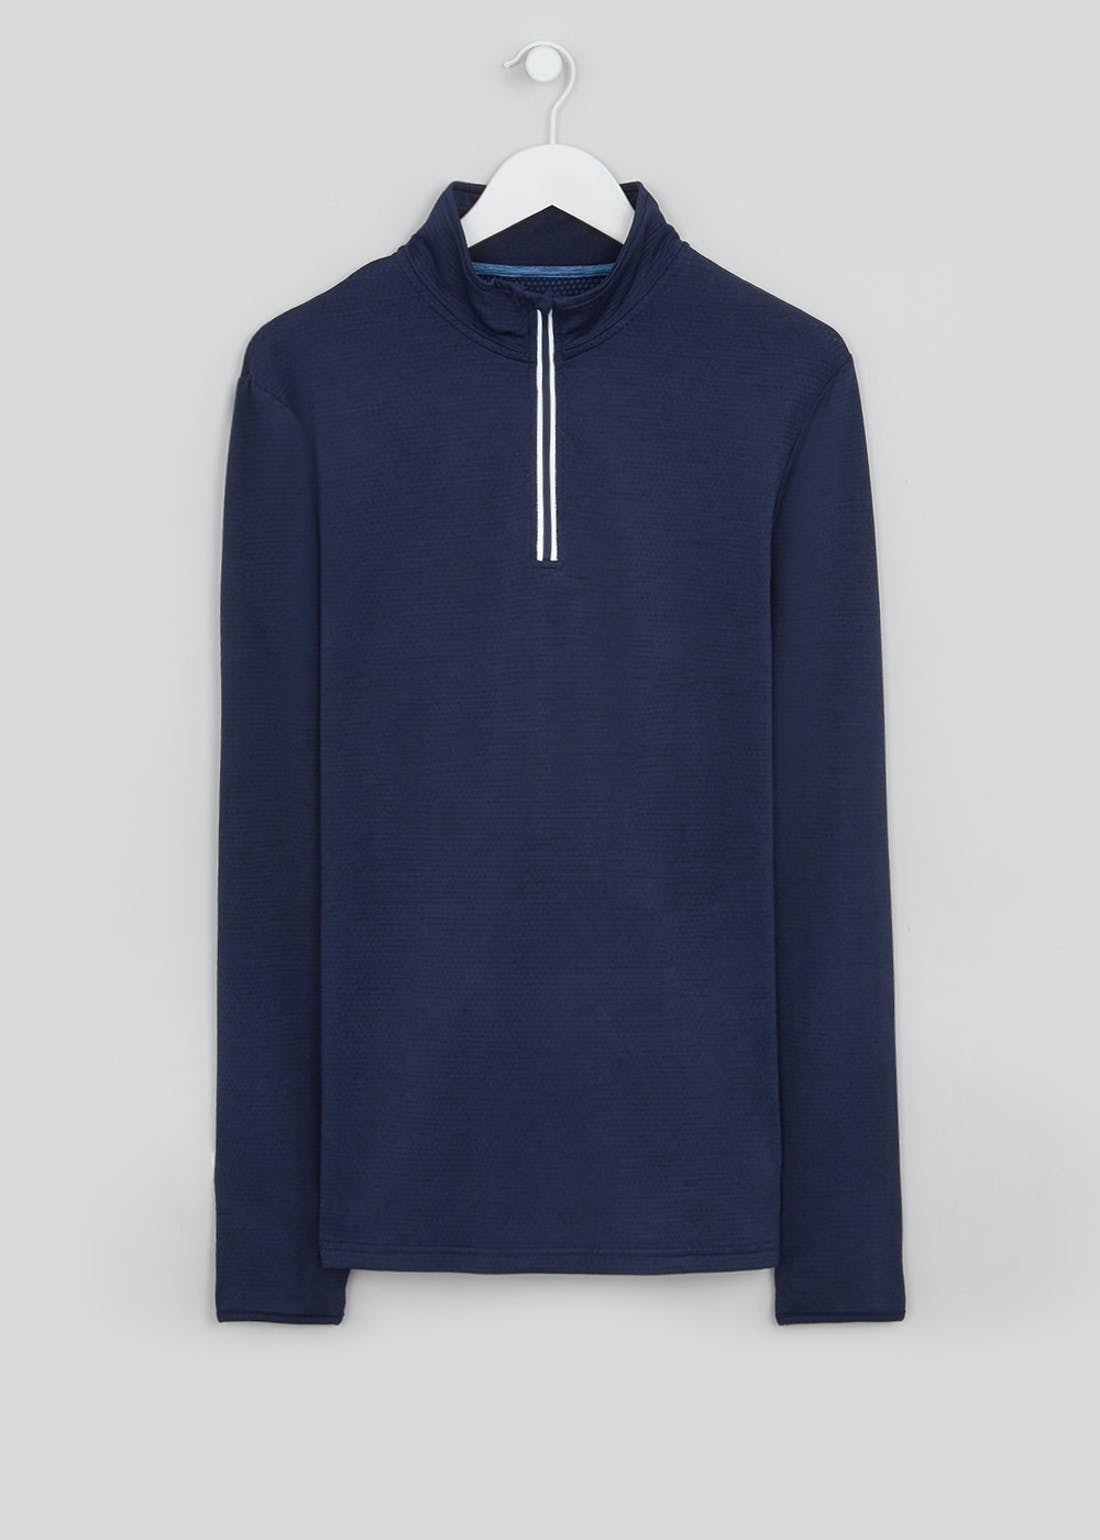 Souluxe Navy Half Zip Sports Sweatshirt